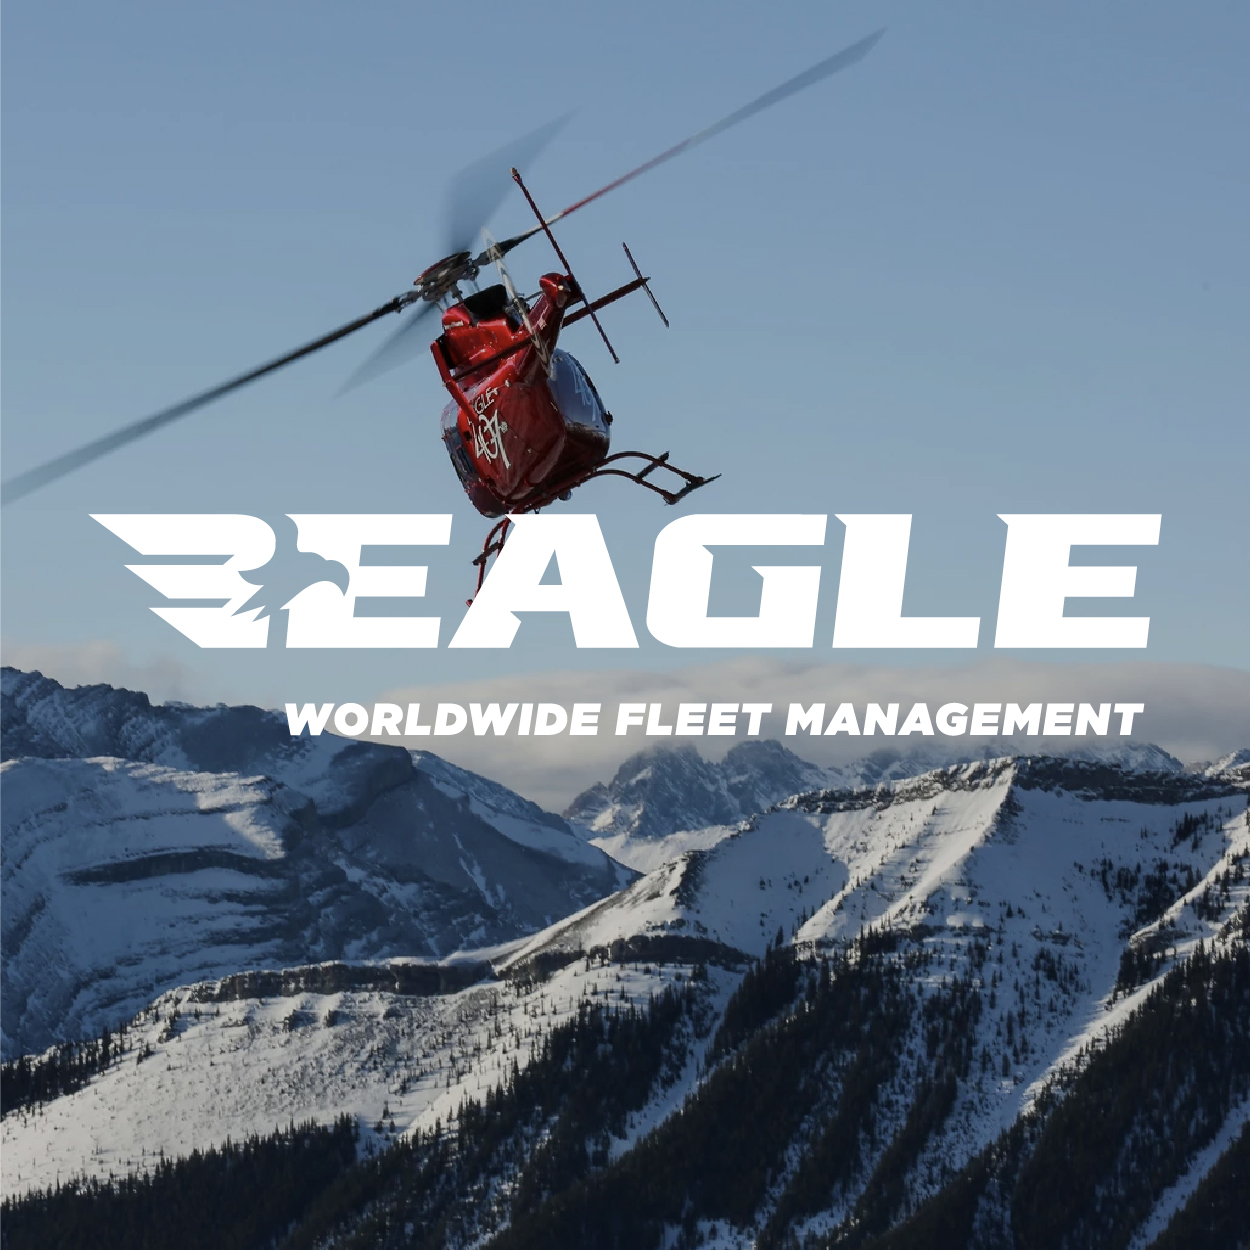 <p><strong>Eagle Copters</strong></p>